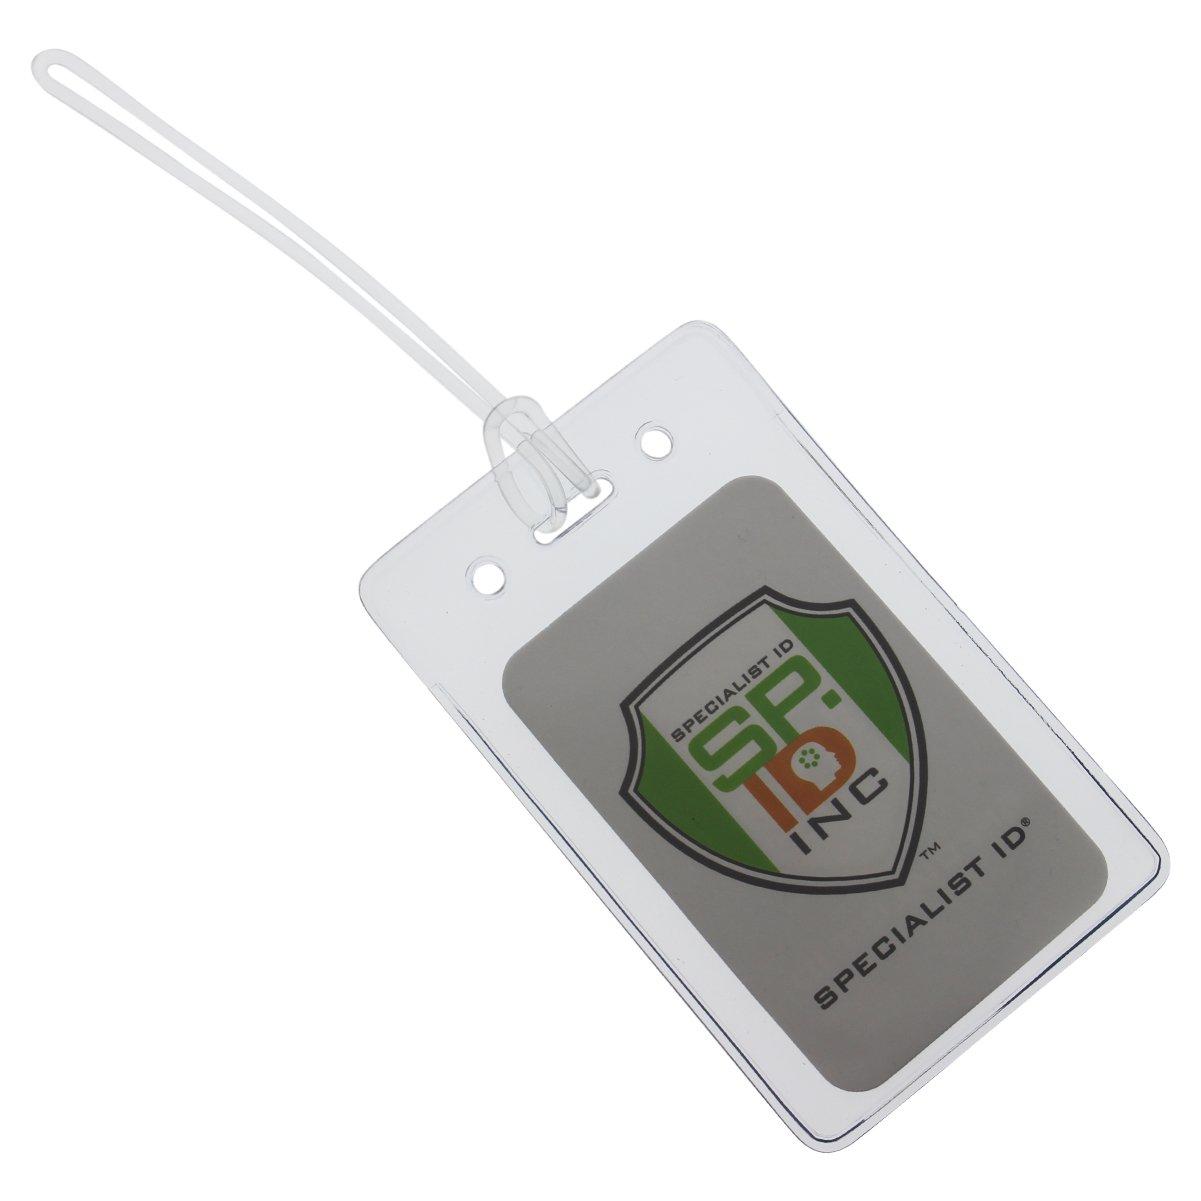 100 Pack - LOCKING TOP - Clear Plastic Luggage Identification Tags with Loops Included - Business Card or Photo Insert Bag Tags - Great for Travel and Student ID's by Specialist ID